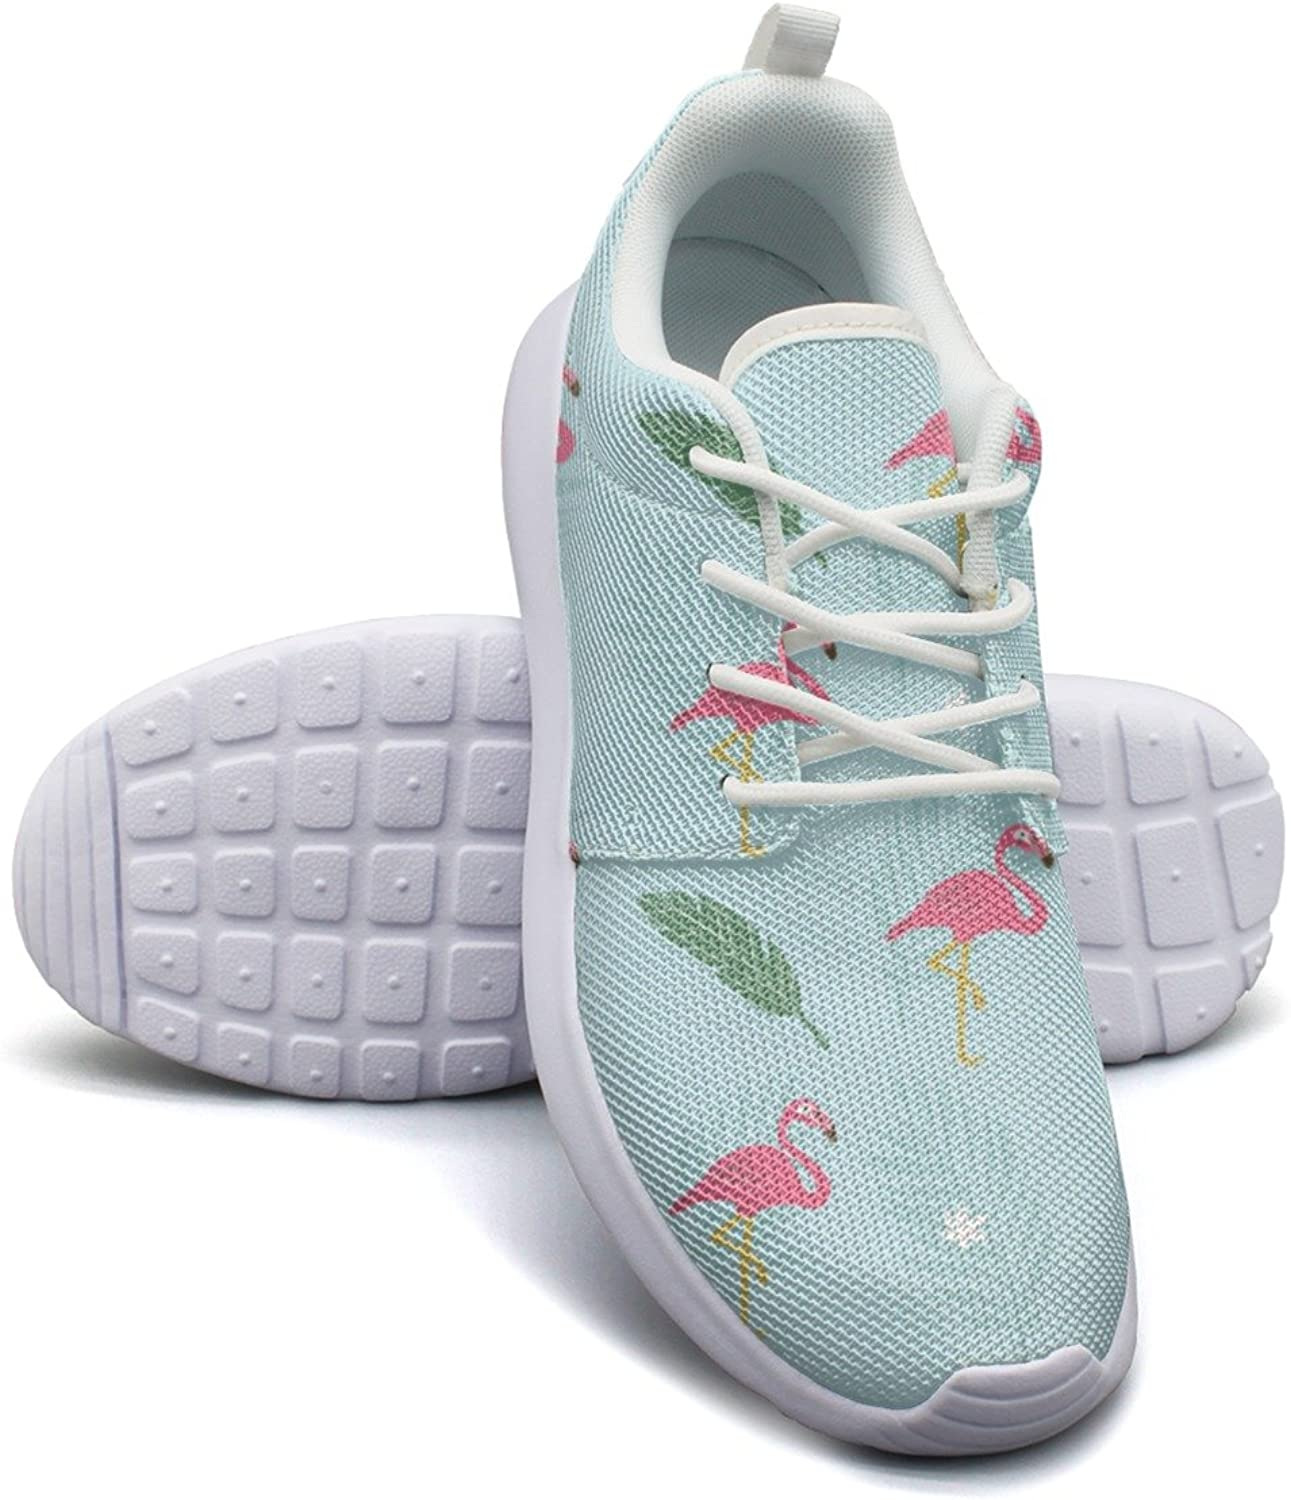 Gjsonmv Large Tropical Flamingo mesh Lightweight shoes for Women Non Slip Sports Hiking Sneakers shoes